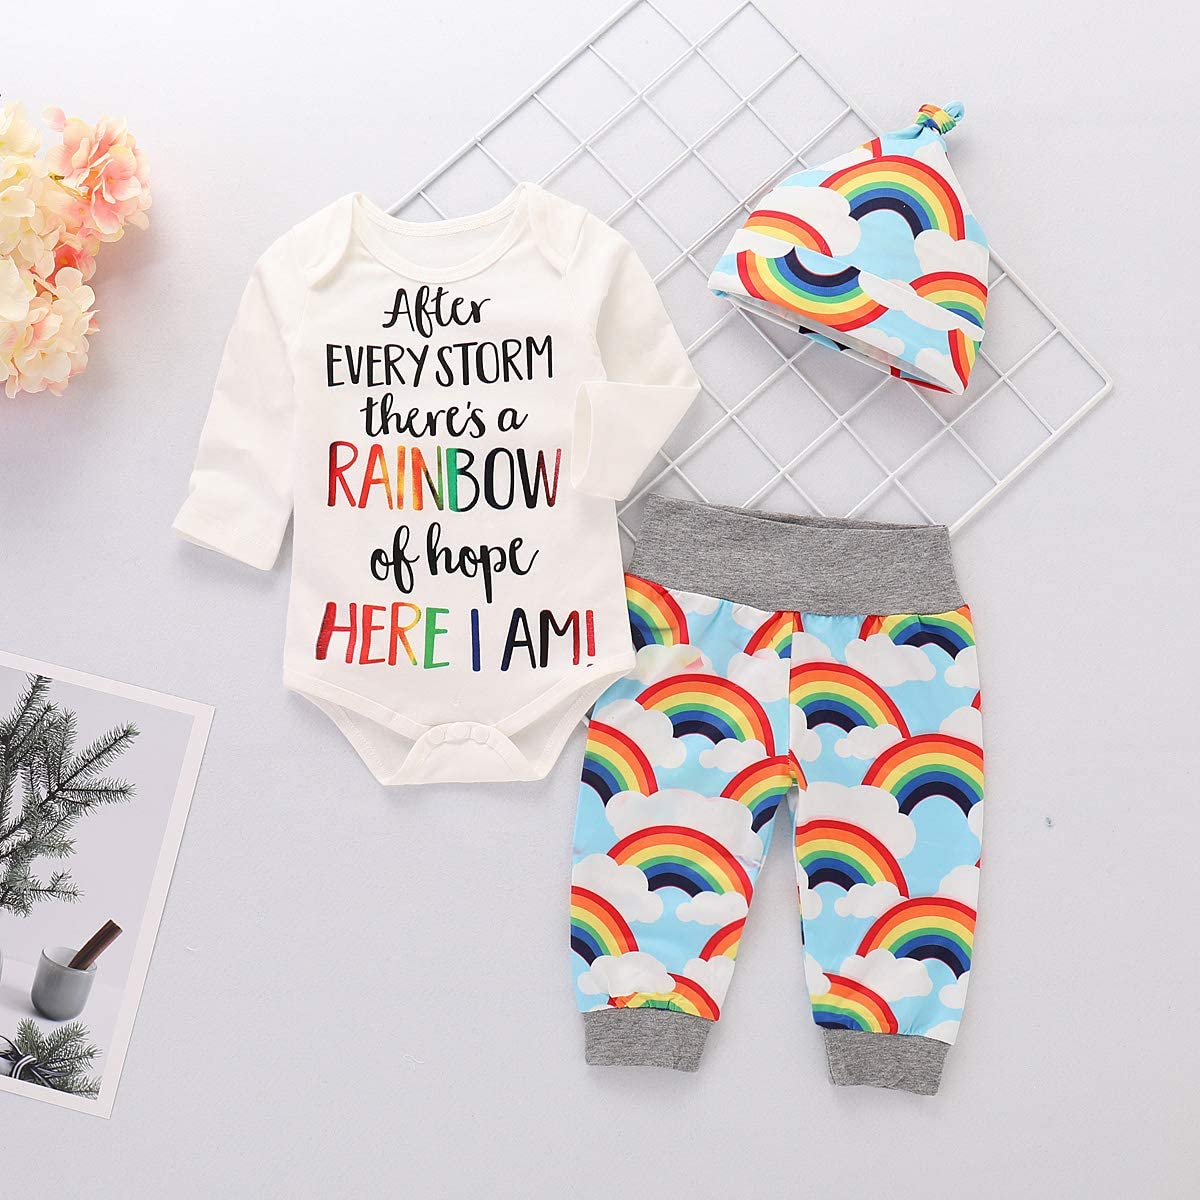 puseky Newborn Baby Boys Girls Outfits Letters Romper Jumpsuit Rainbow Pants Clothes Set